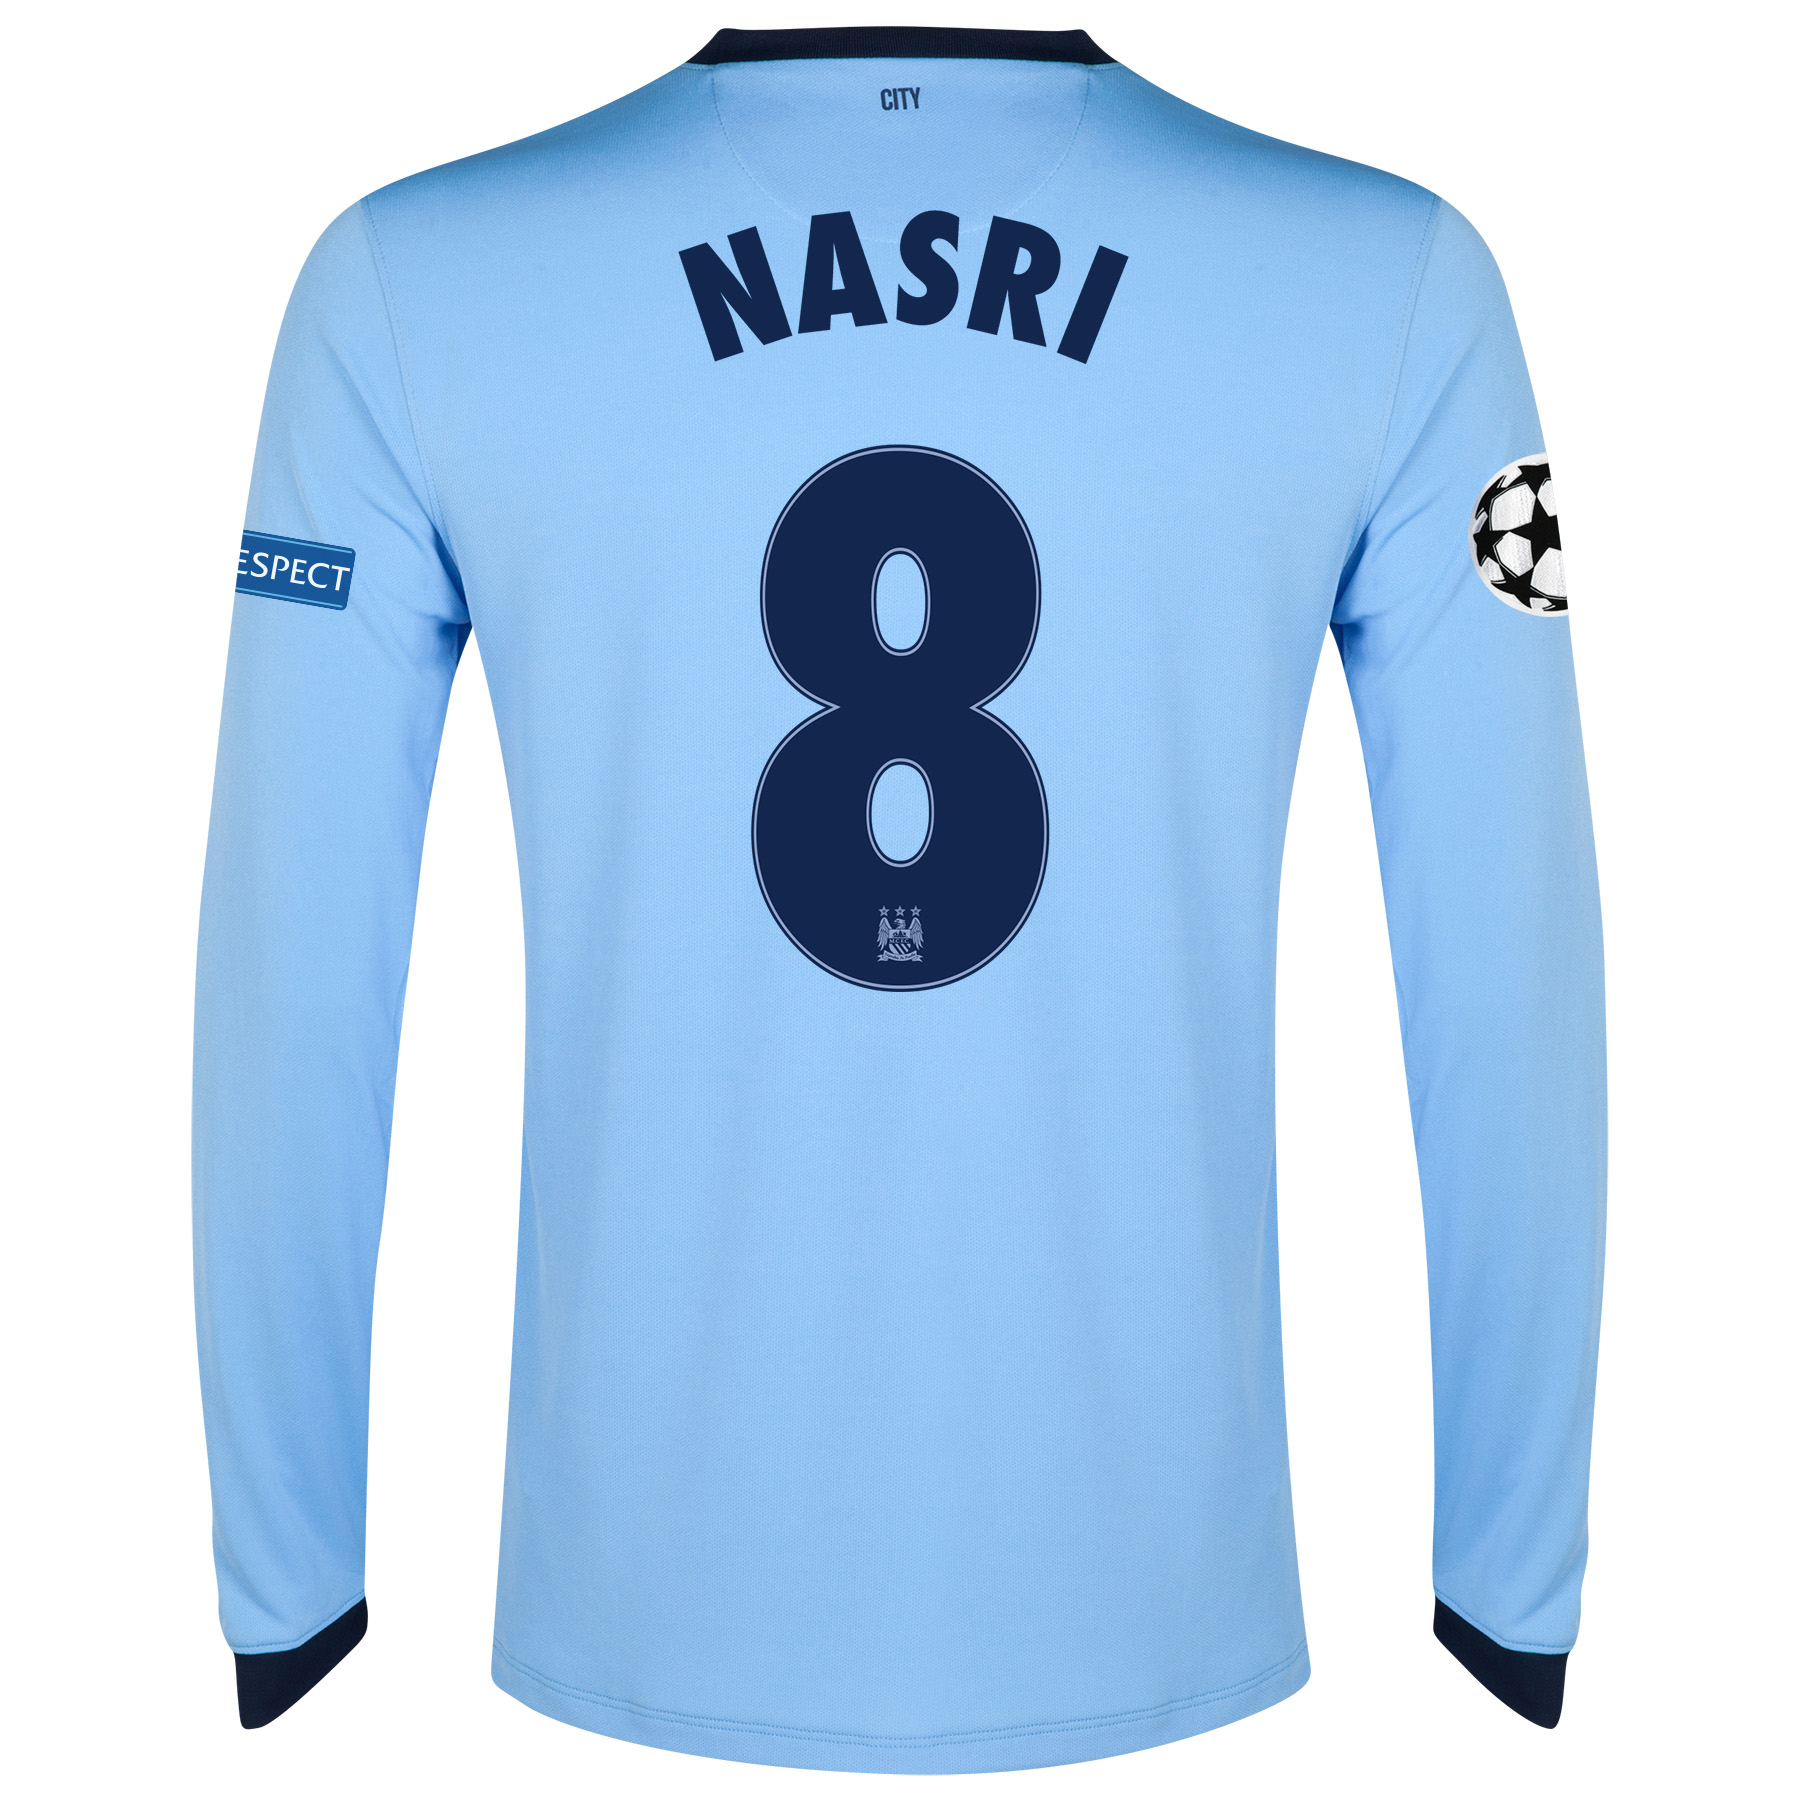 Manchester City UEFA Champions League Home Shirt 2014/15 - Long Sleeve - Kids Sky Blue with Nasri 8 printing